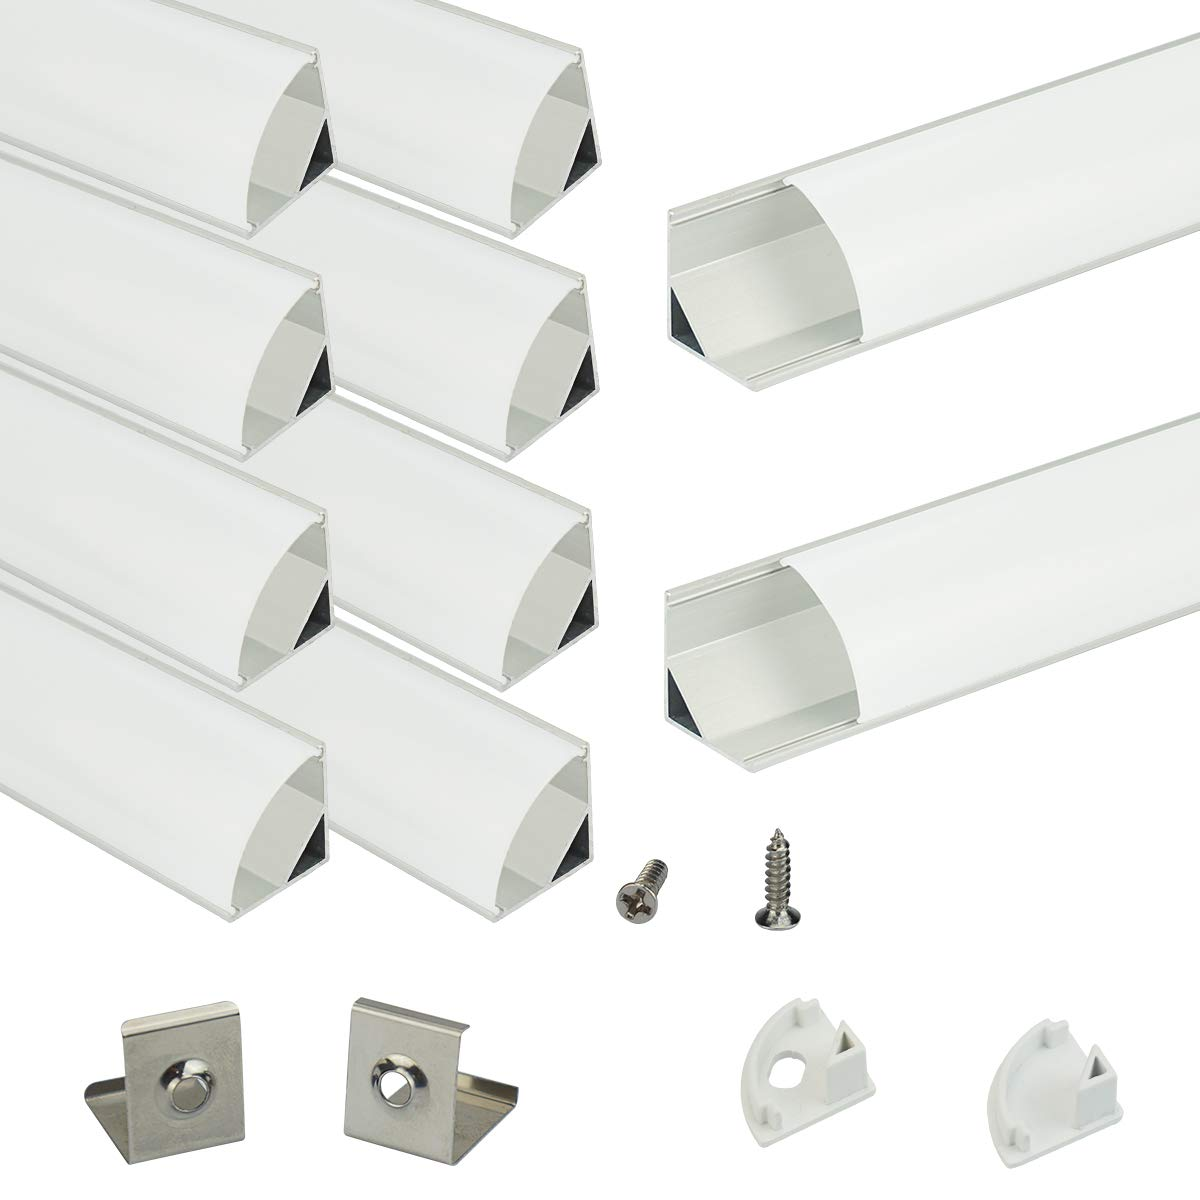 Muzata Aluminum Channel for Led Strip Light with Milky White Diffuser Cover. Aluminum Profile with Video, V-Shape, 10-Pack 6.6ft 2M V2SW,Series LV1